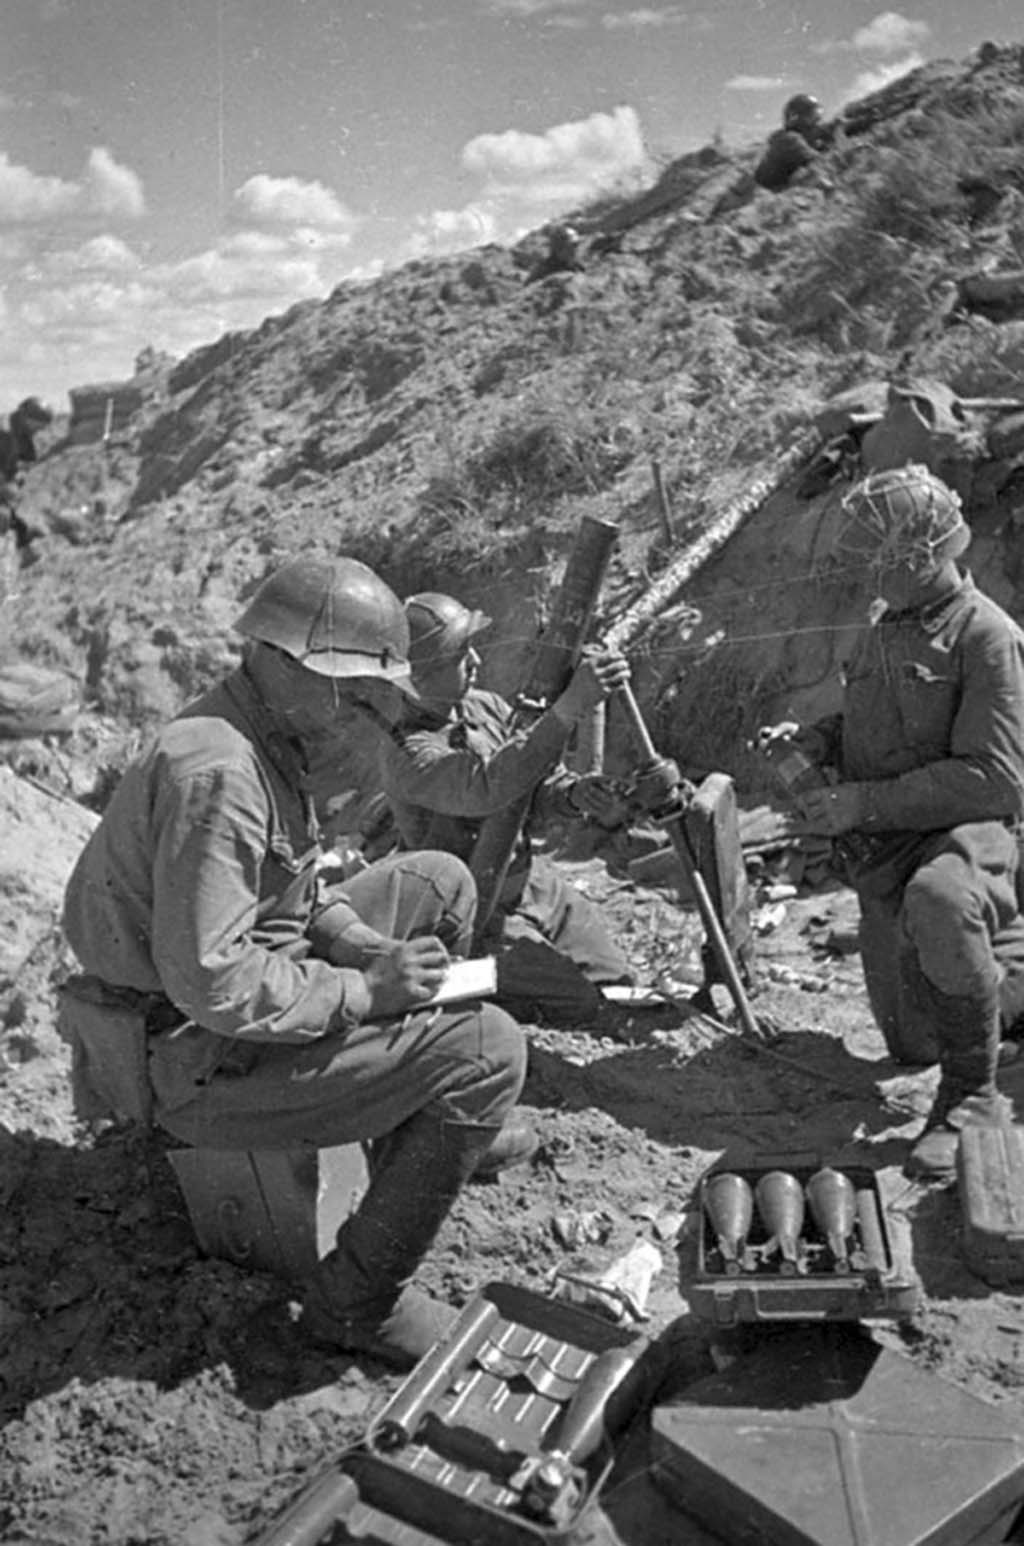 82-mm mortar